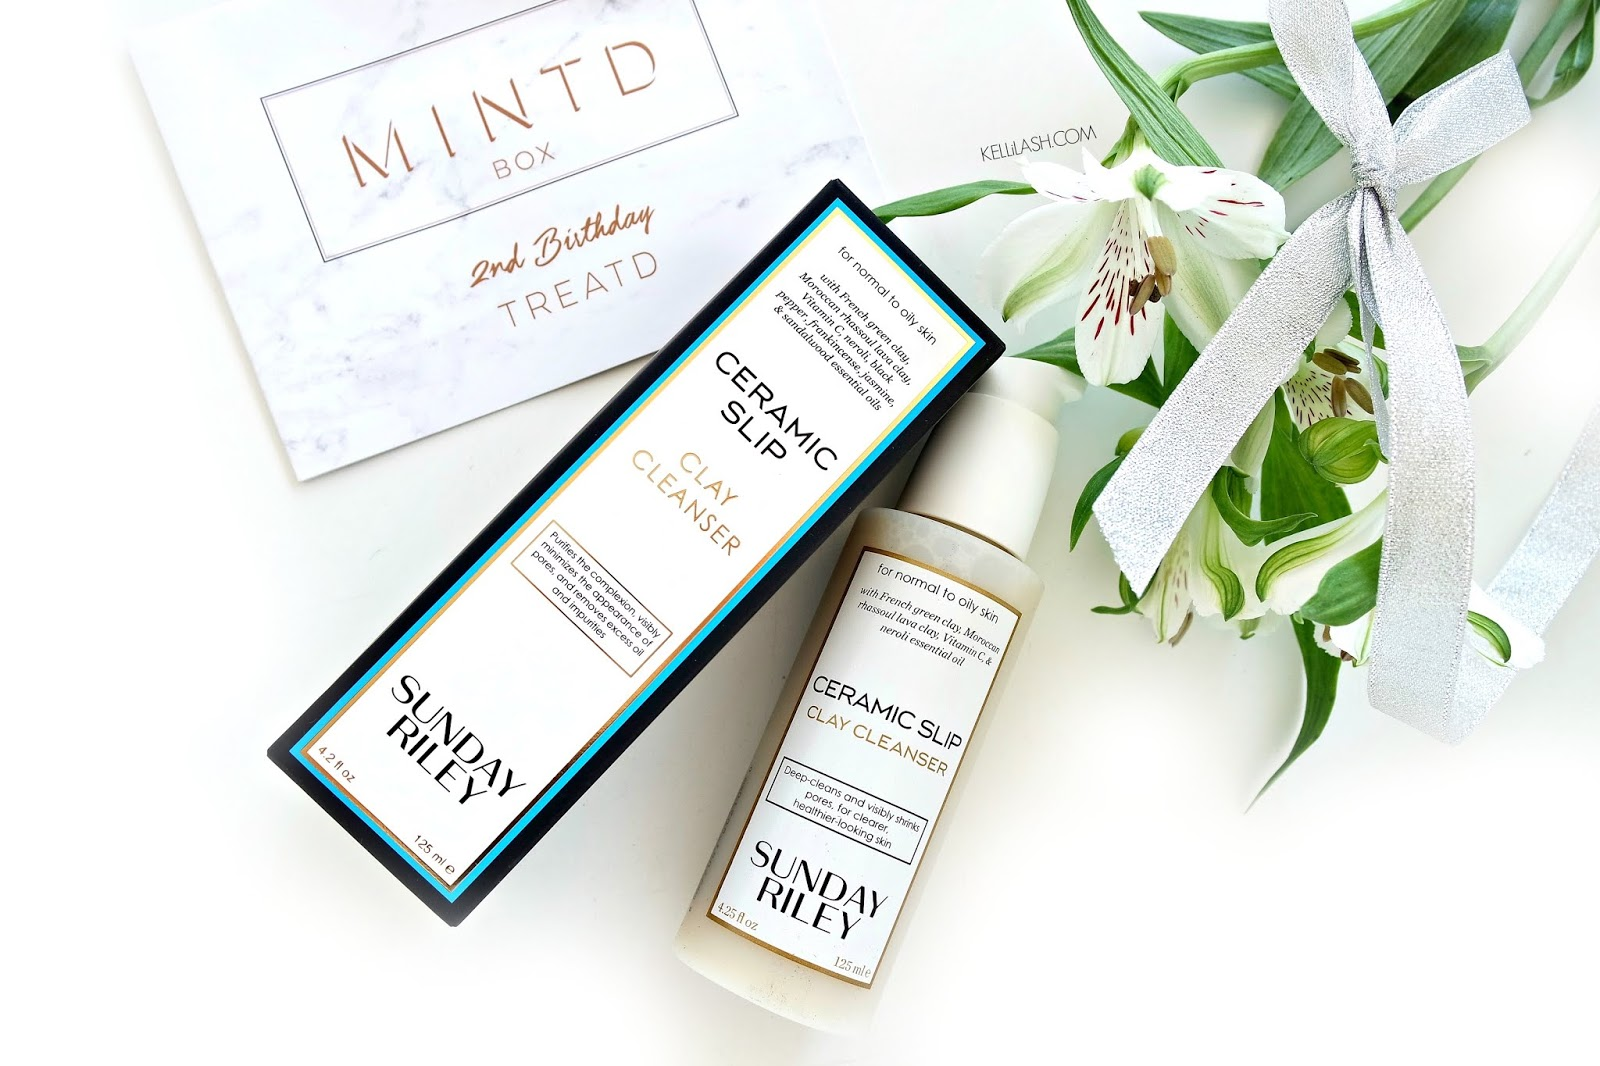 TREATD • Happy 2nd Birthday Mintd Box! | KELLiLASH